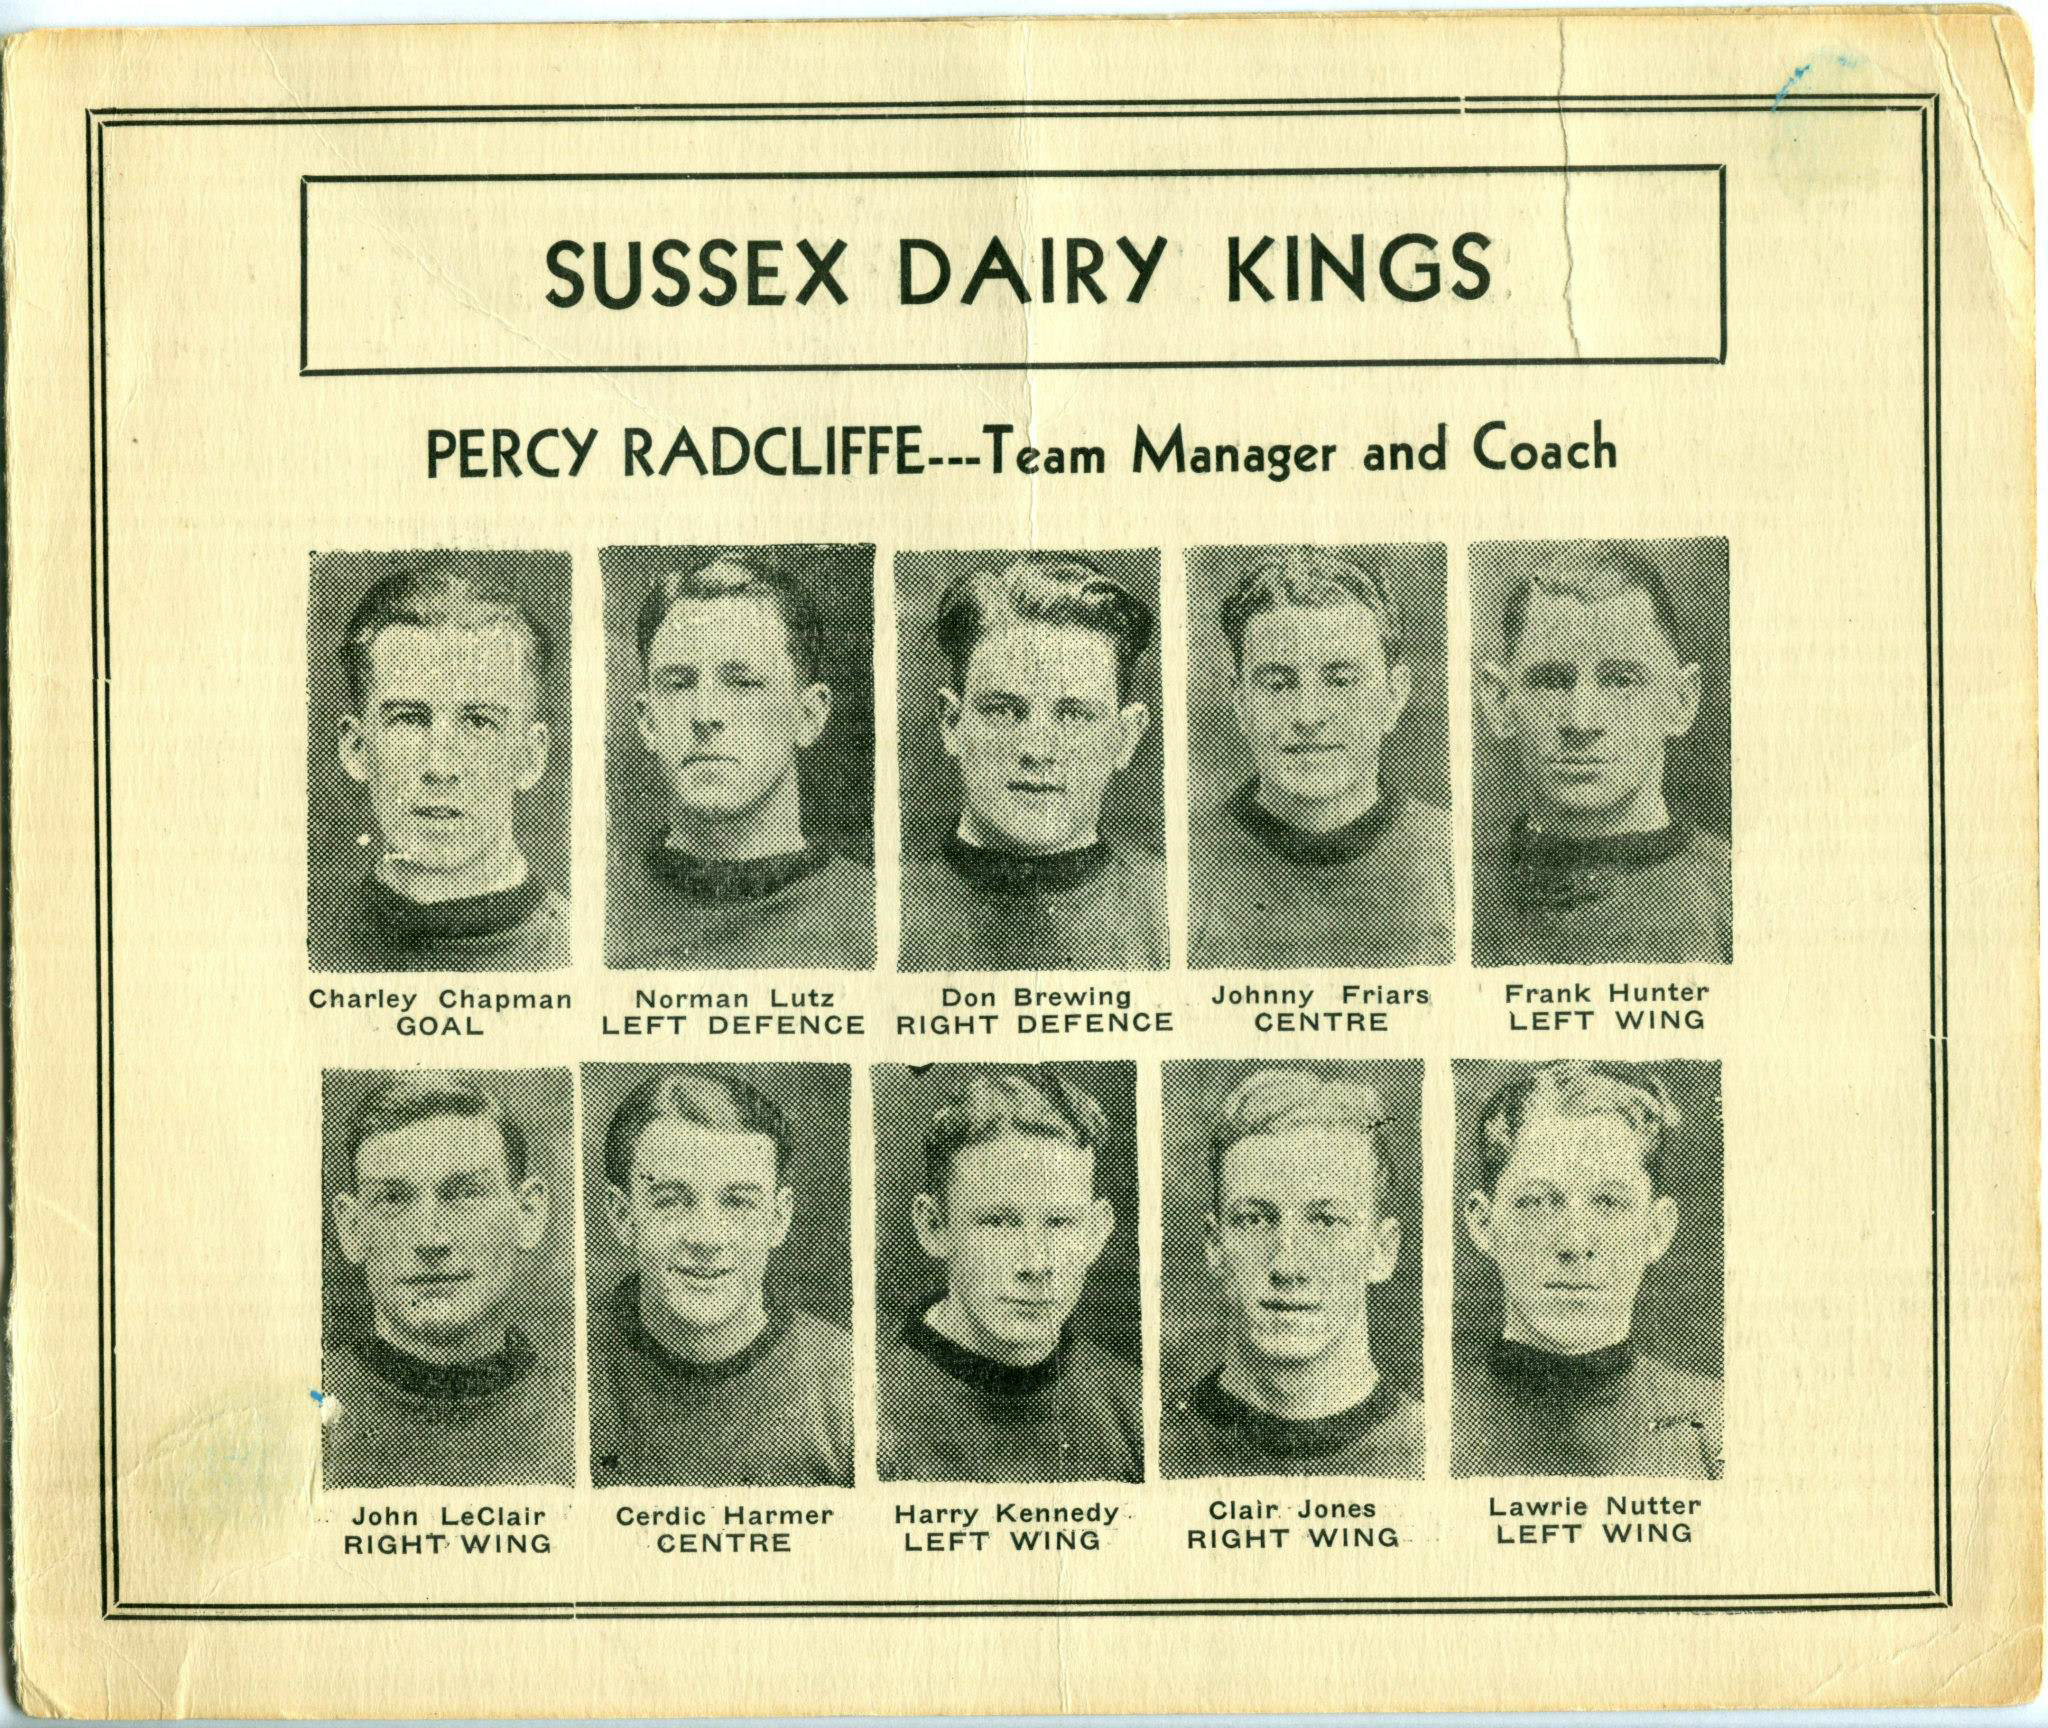 Sussex Dairy Kings